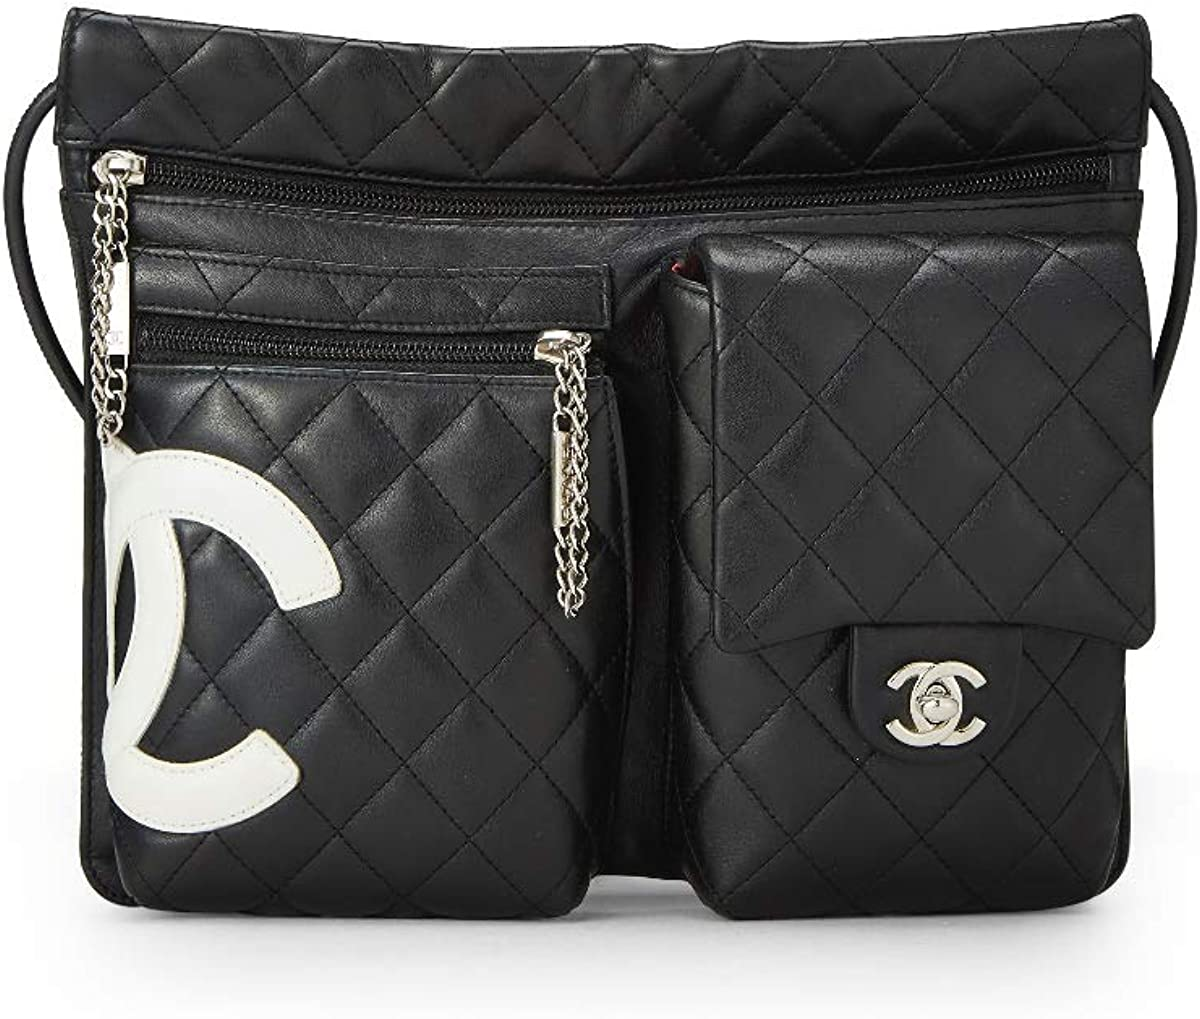 CHANEL Black Quilted Calfskin Cambon Ligne Shoulder Bag (Pre-Owned)